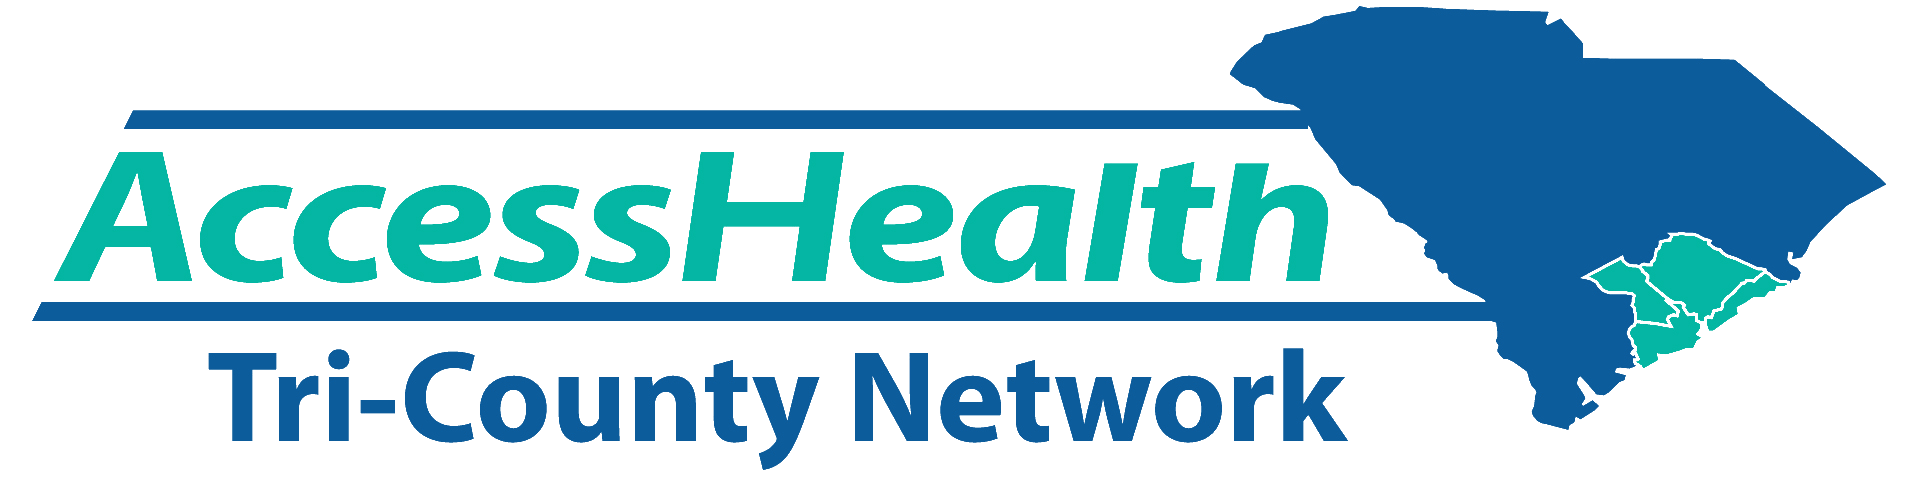 AccessHealth Tri-County Network